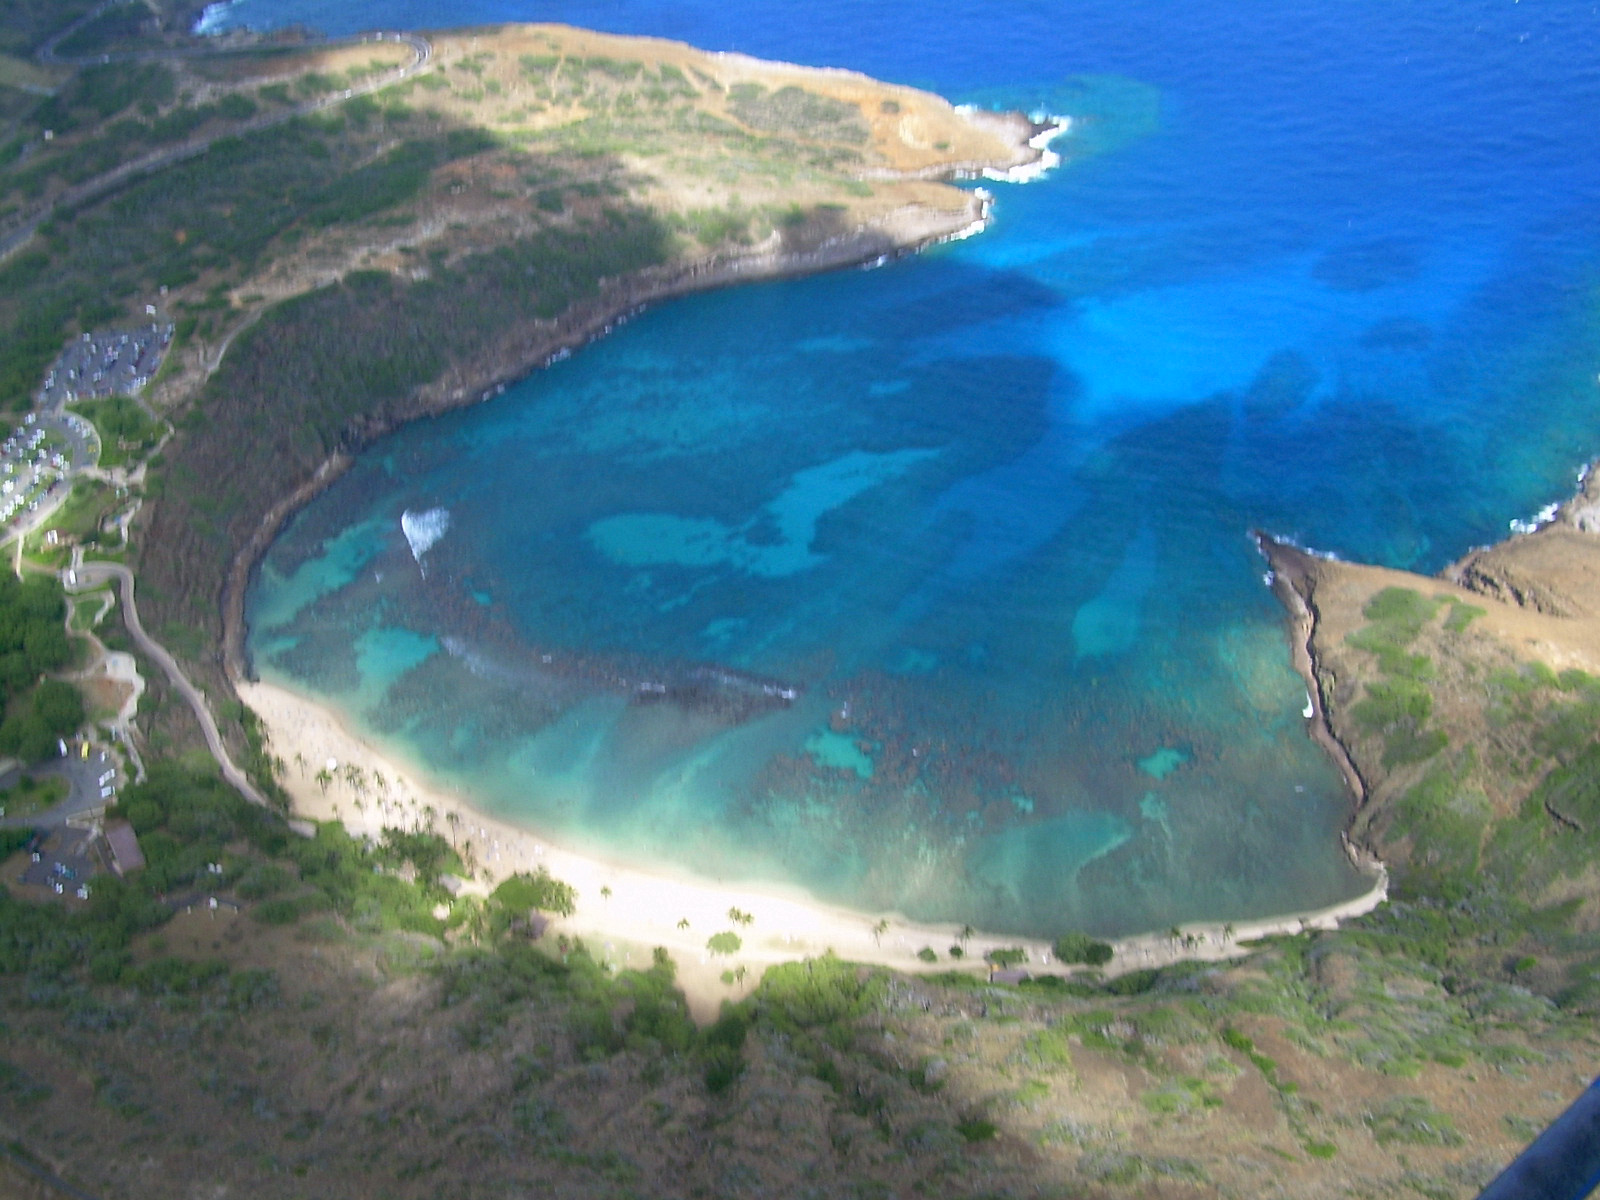 Hanauma Bay - Attraction - 7455 Kalanianaole Hwy, Honolulu, HI, US